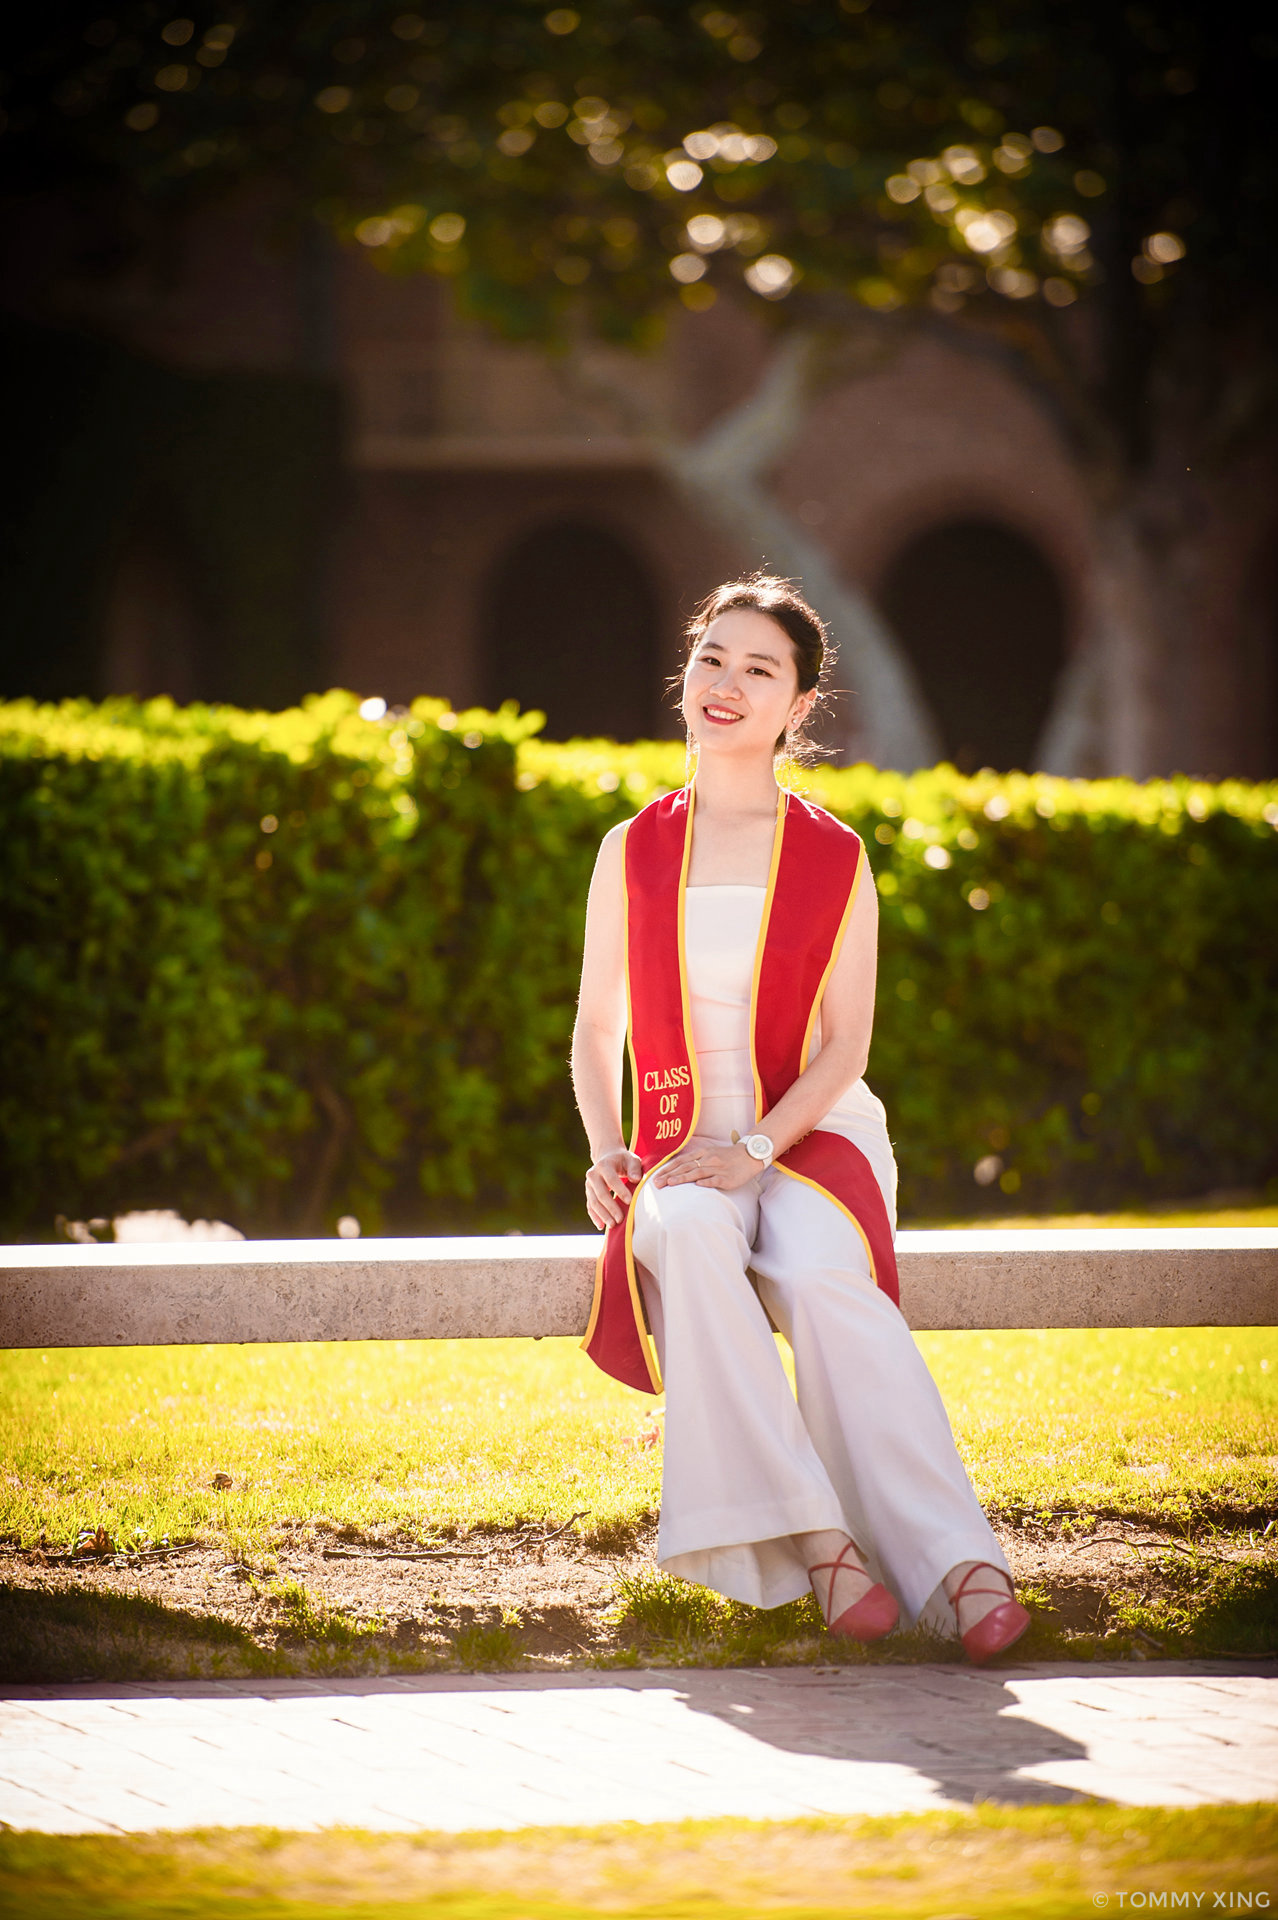 Graduation Pictures Los Angeles USC UCLA - Tommy Xing Photography 11.jpg